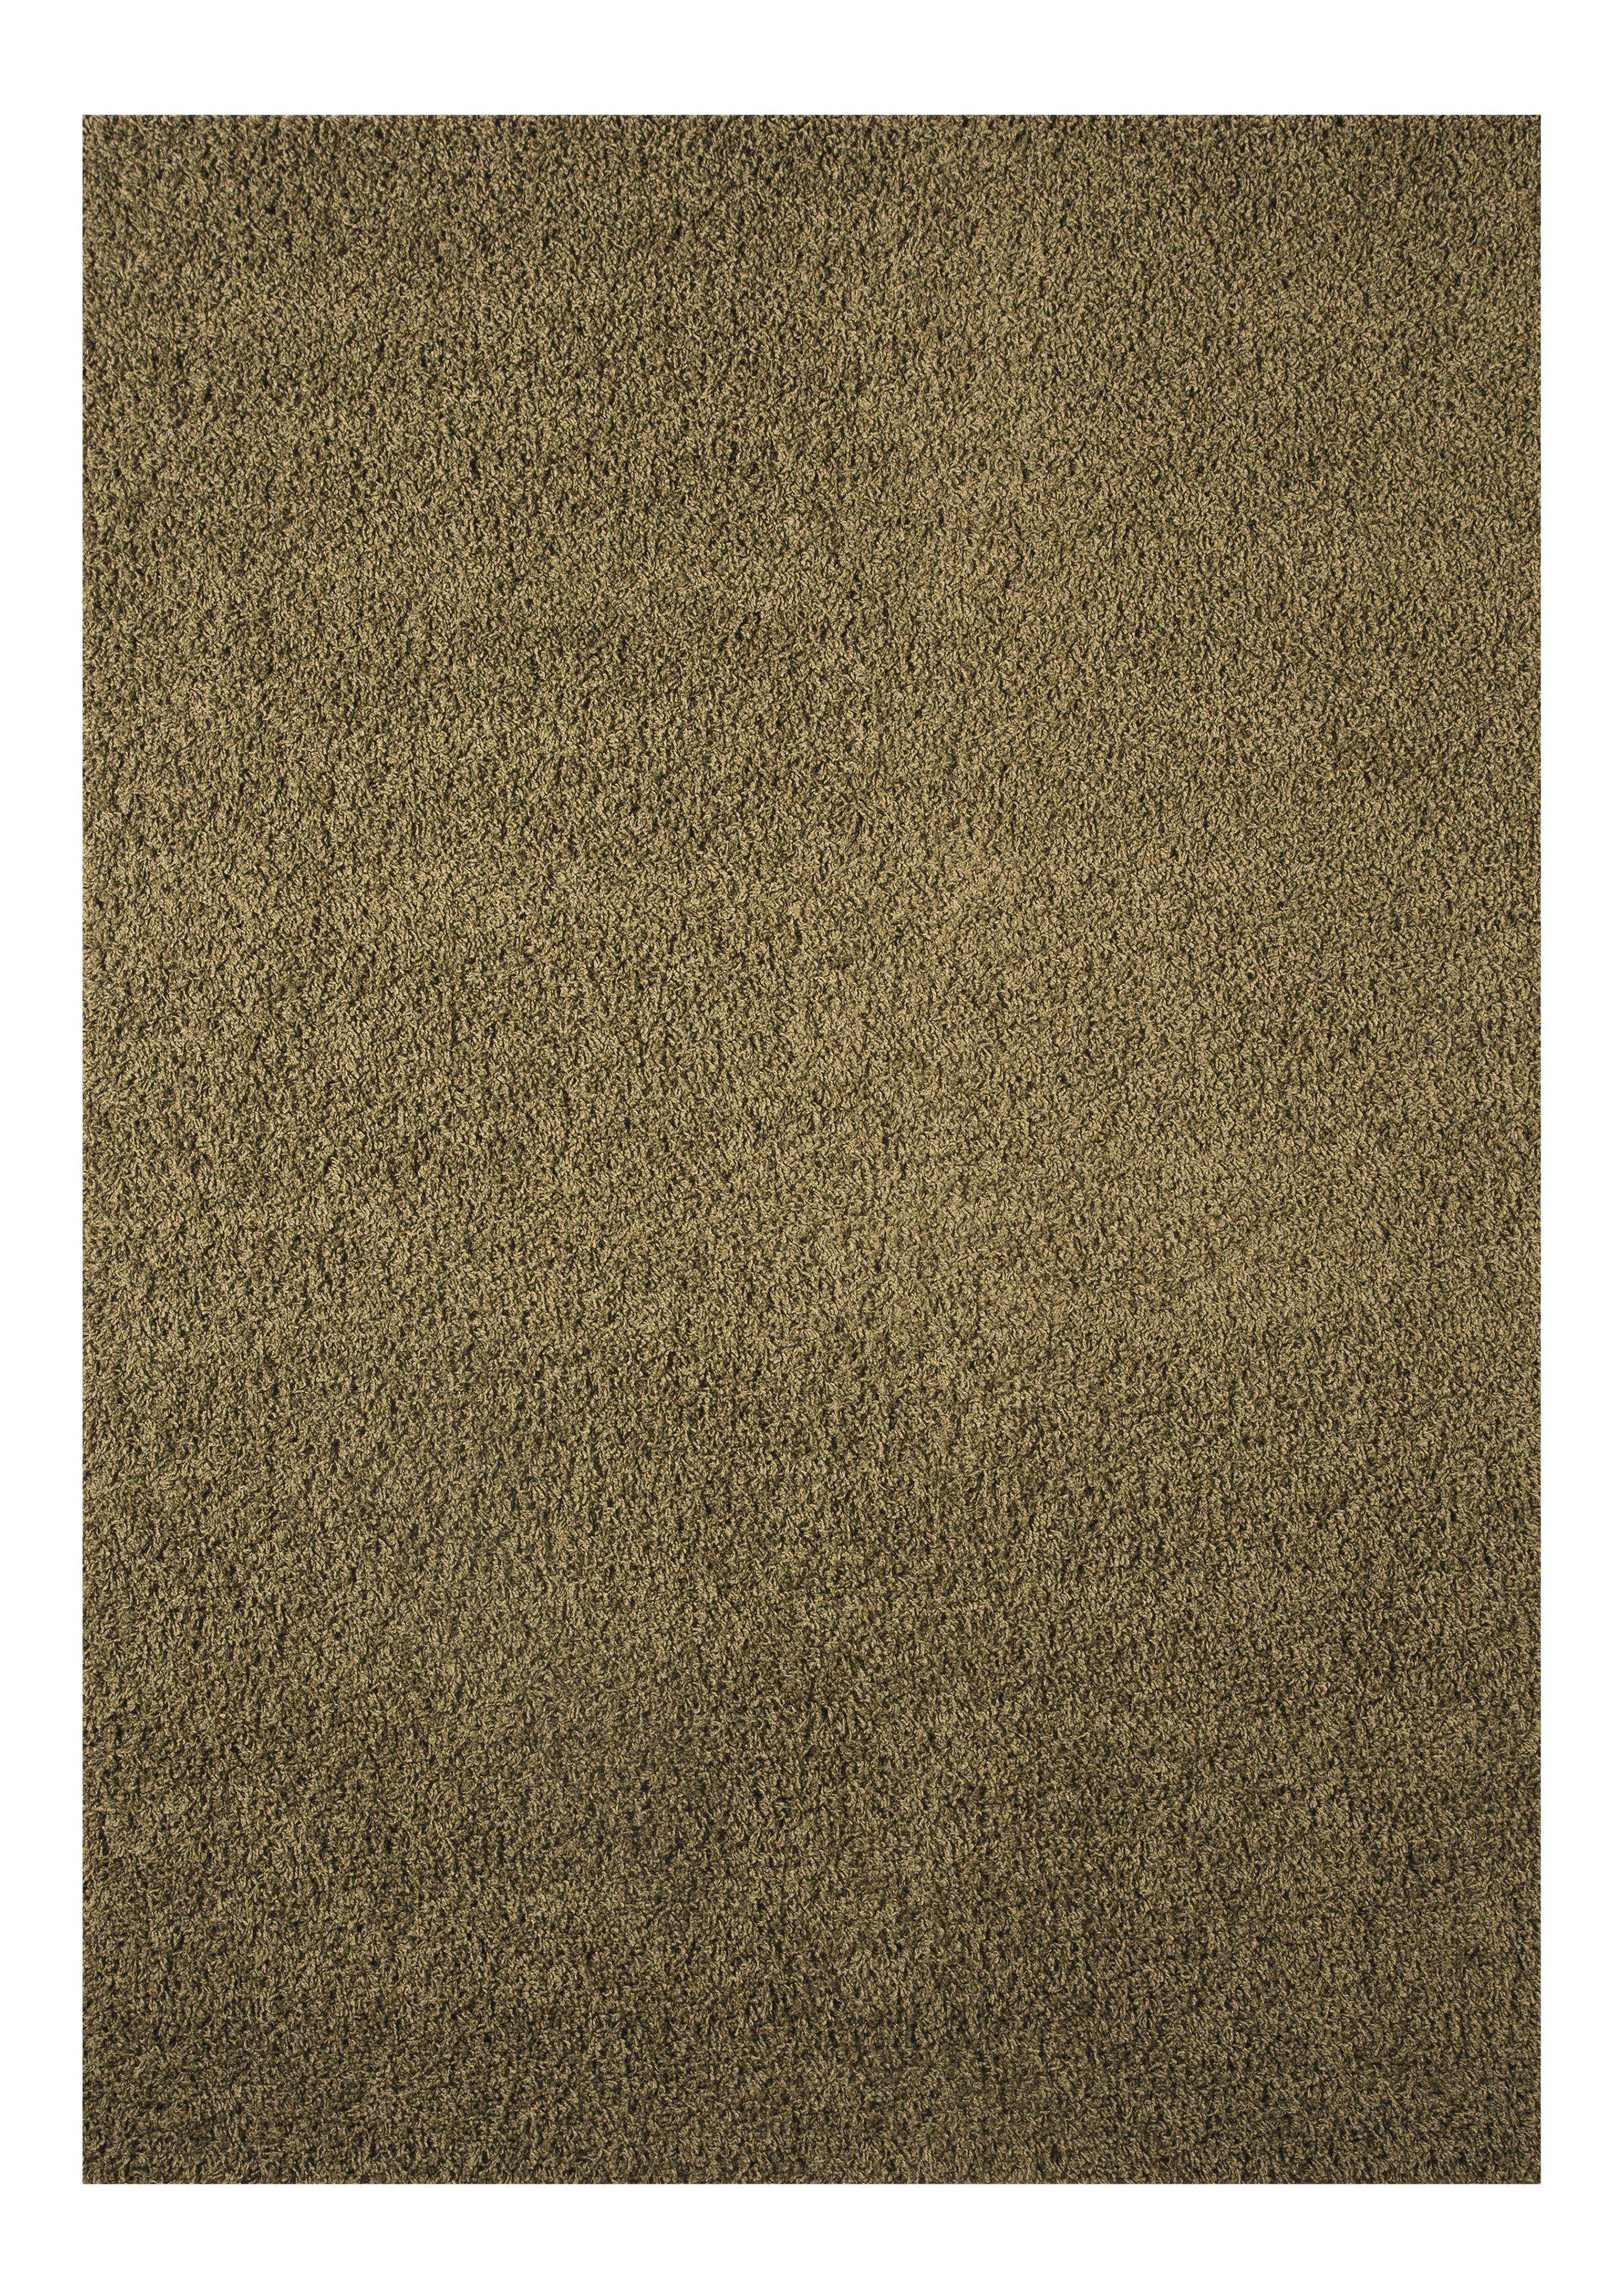 Signature Design by Ashley Contemporary Area Rugs Caci Sage Green Medium Rug - Item Number: R305002